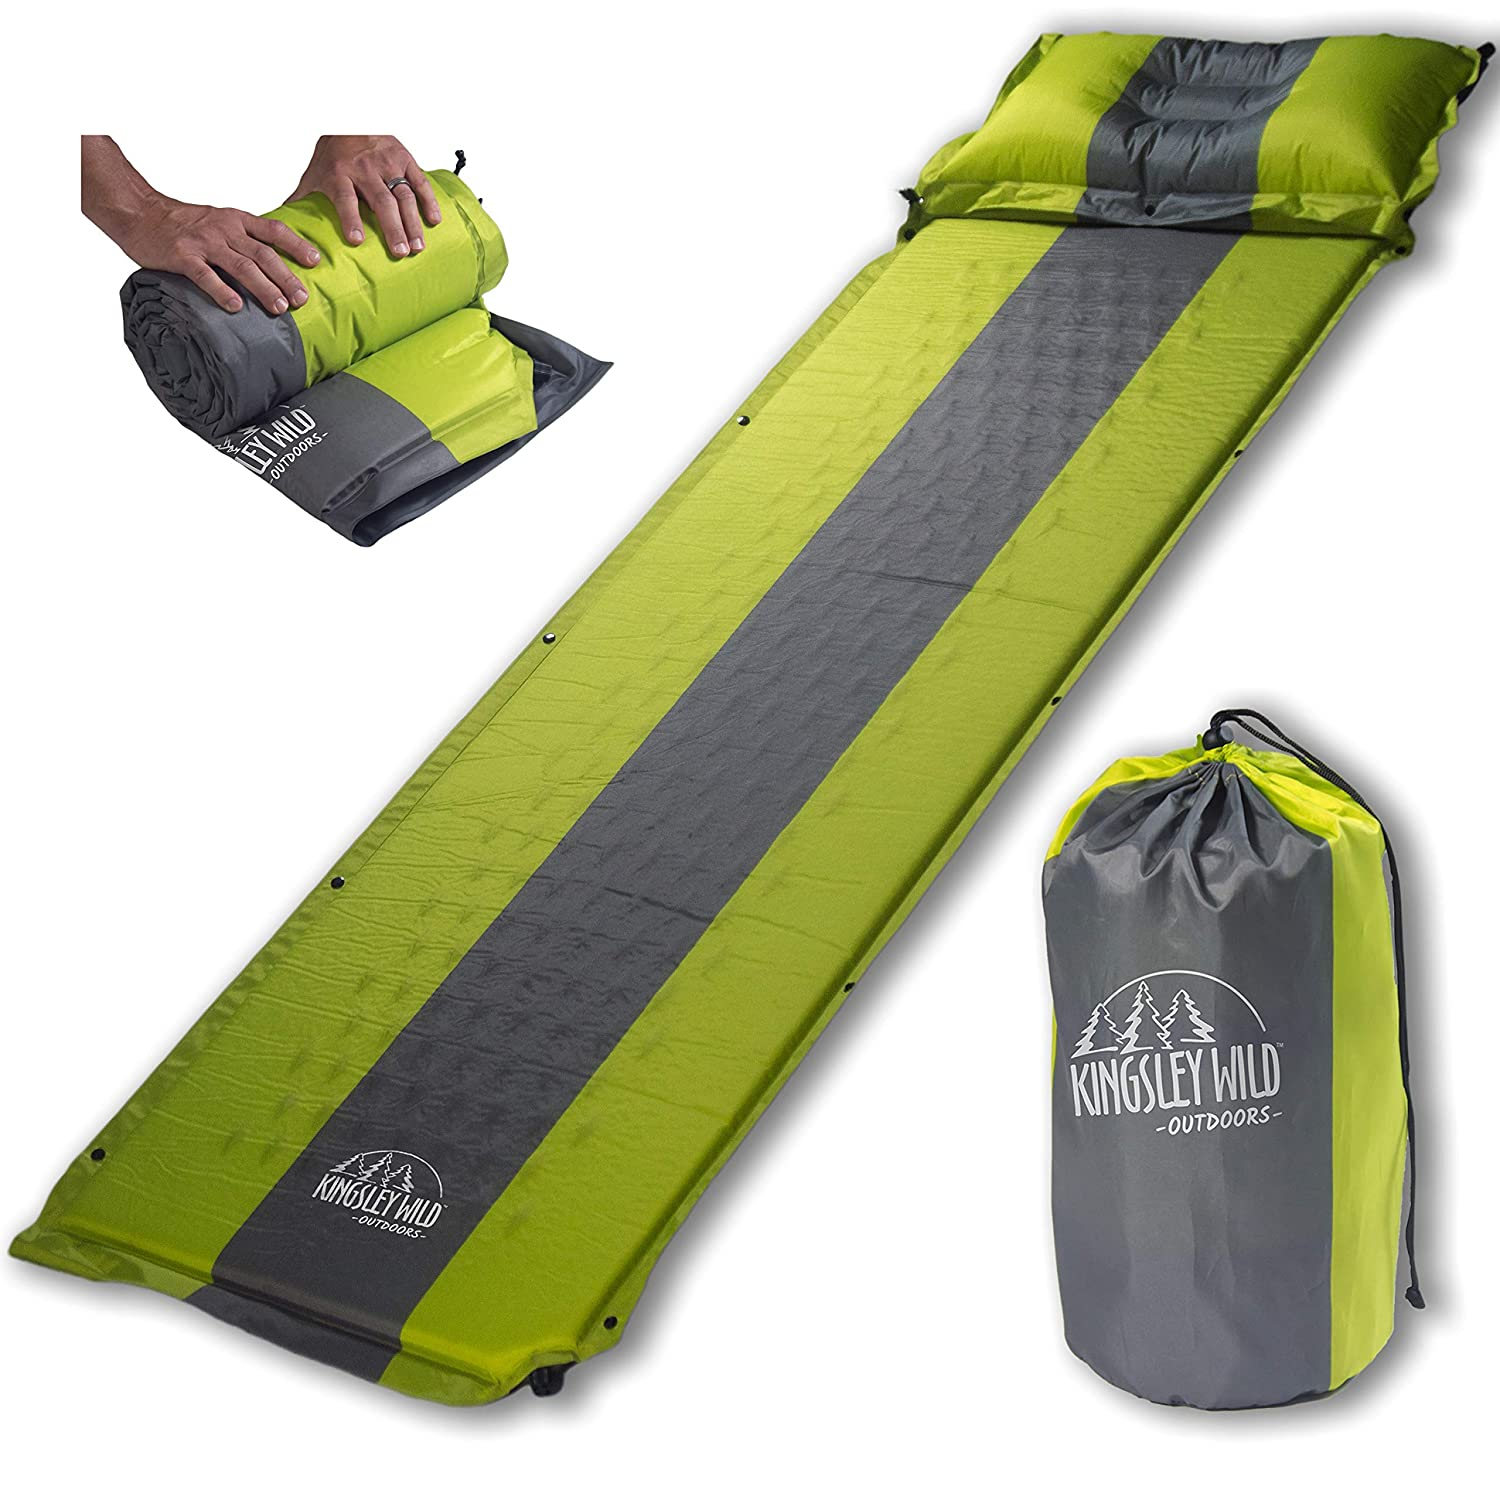 Kingsley Wild Compact, Outdoors Self Inflating [並行輸入品] Sleeping Pad and Pillow Portable (Detachable)- Perfect Mat for Tent Camping, Hiking, or Backpacking- Comfortable, Compact, Waterproof and Easily Portable [並行輸入品] B07R3Y7DGB, マルソルオンラインショップ:cb7f4777 --- anime-portal.club